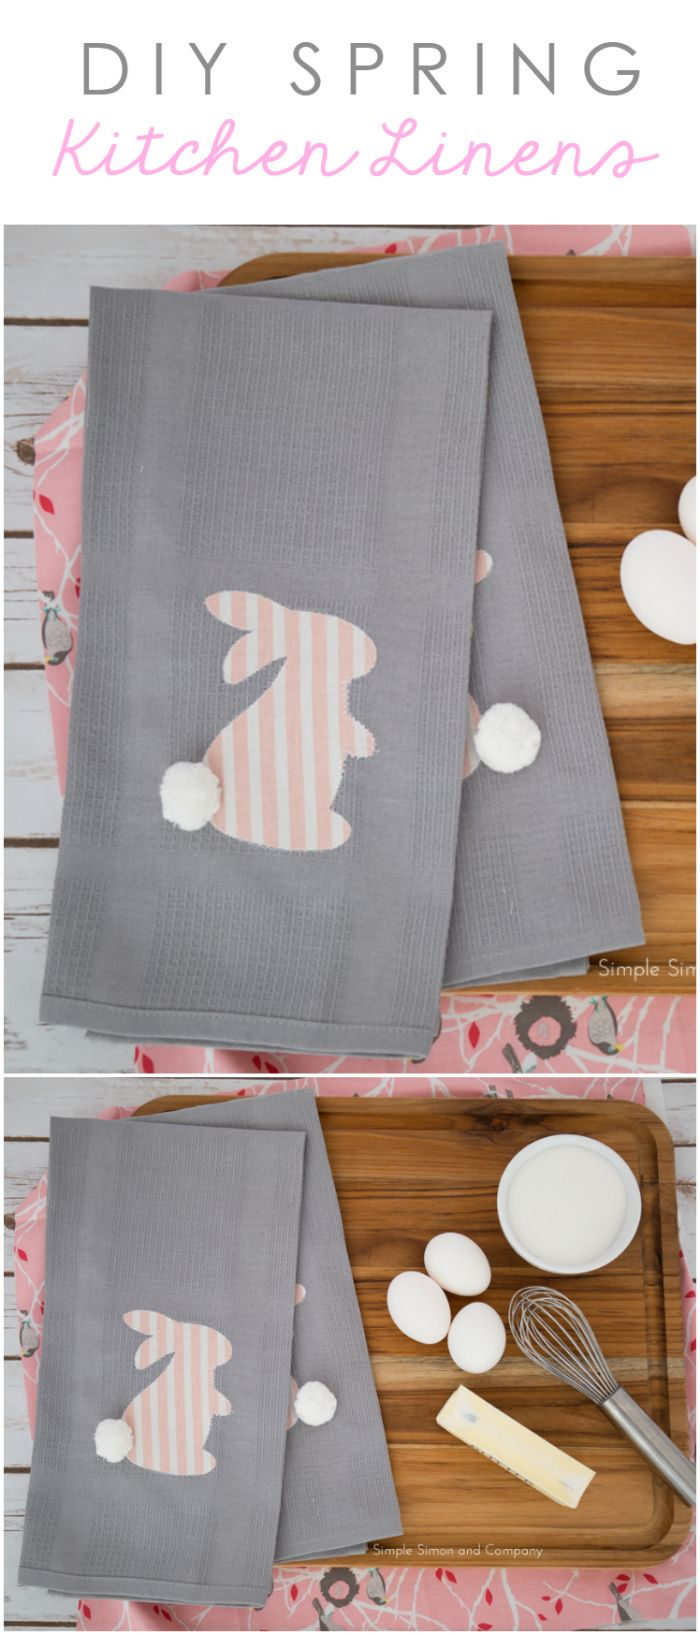 Easter Bunny Napkins by Simple Simon & Co for Lolly Jane